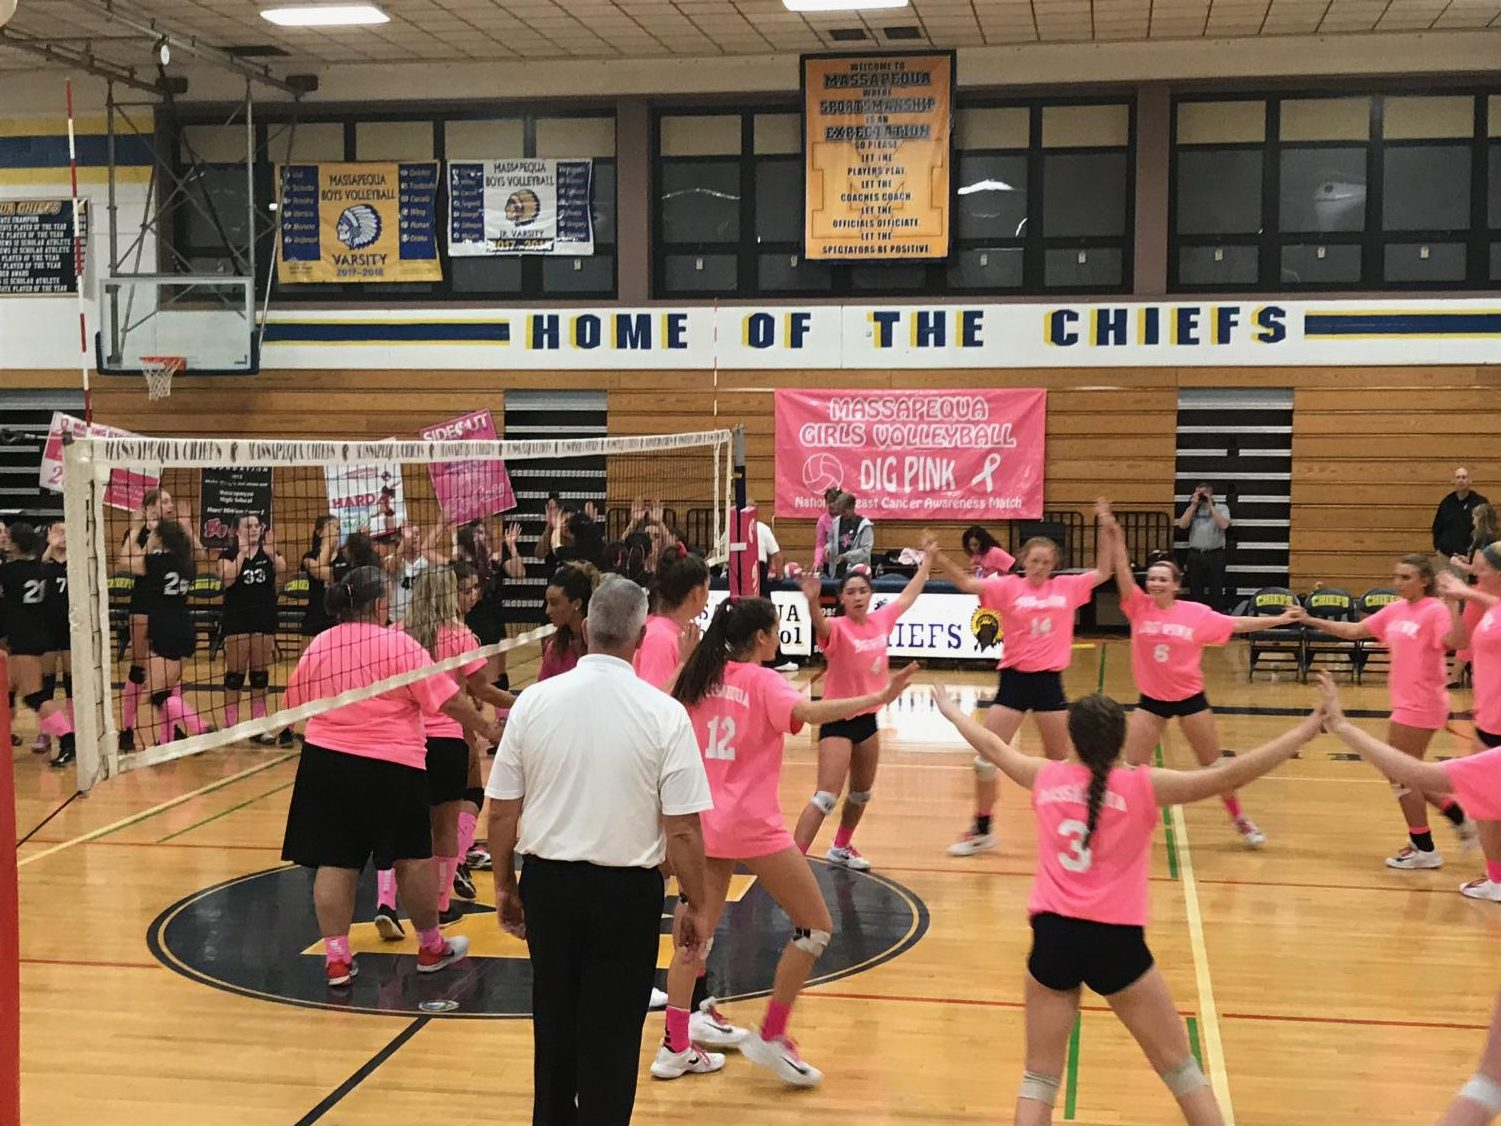 The girls volleyball team spiking to victory!